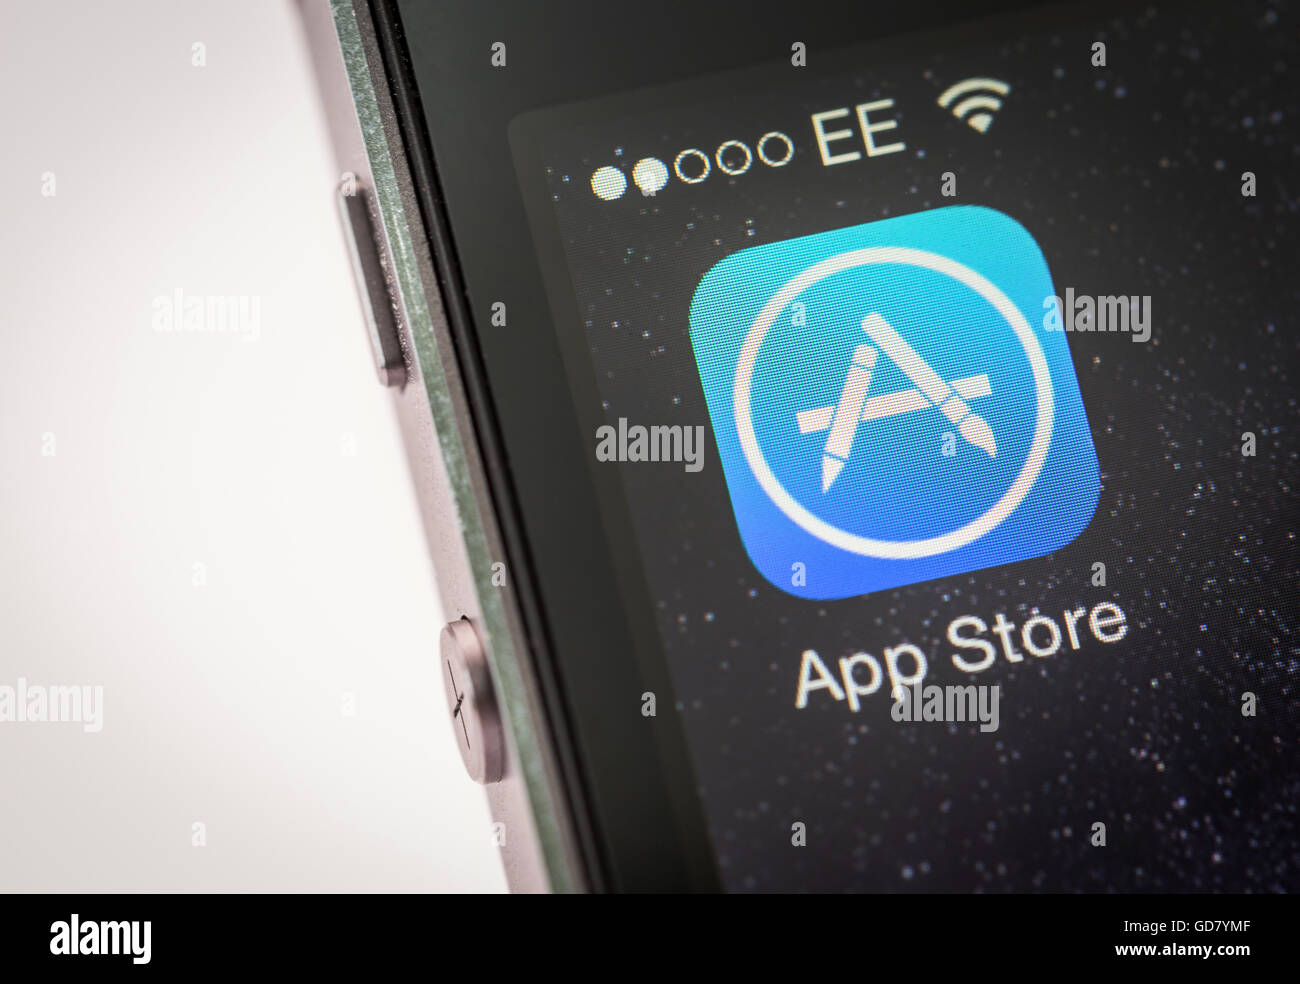 Apple App Store App on an iPhone smart phone - Stock Image